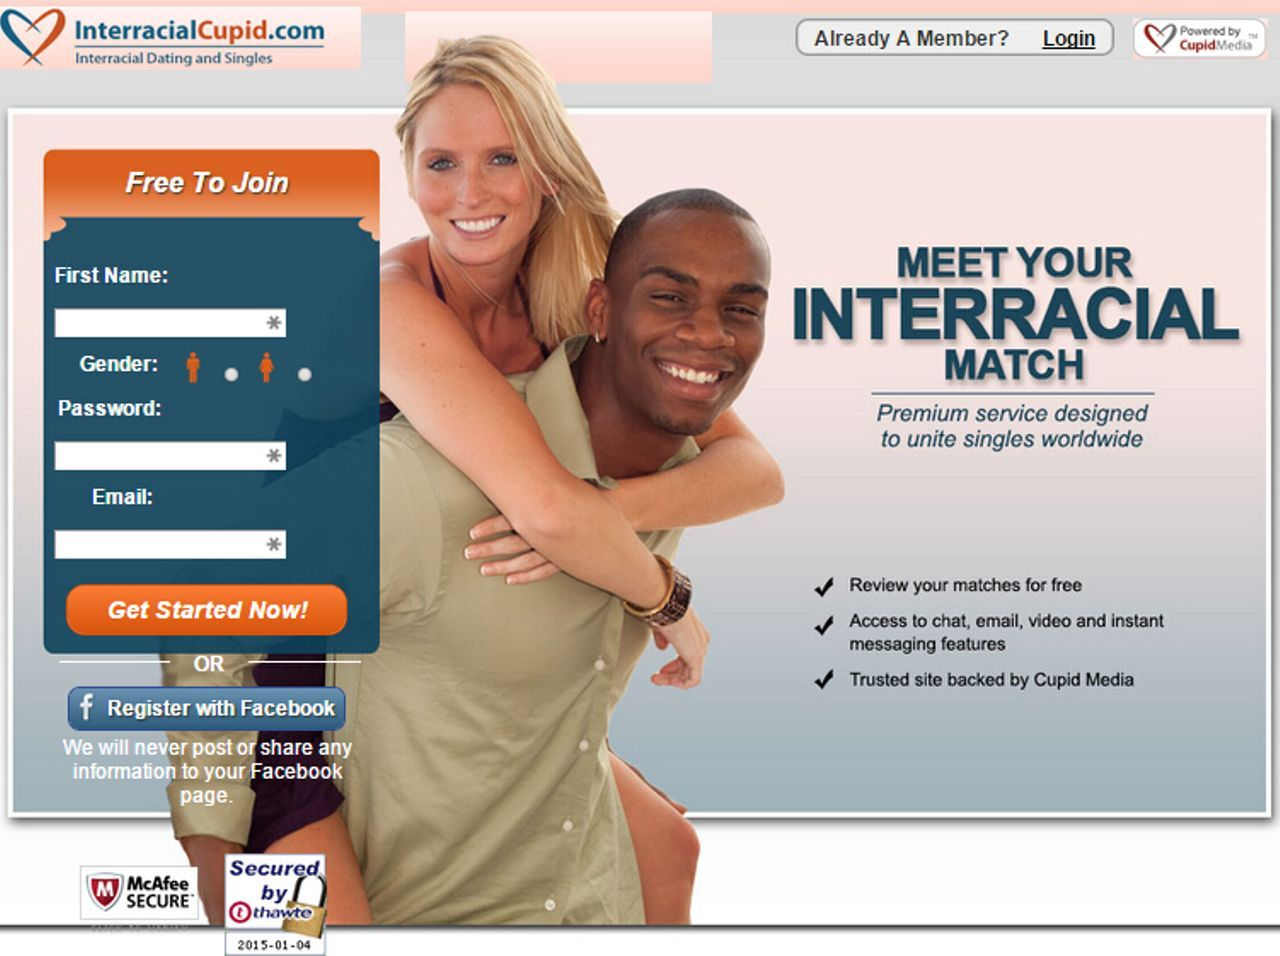 Interracial cupid dating